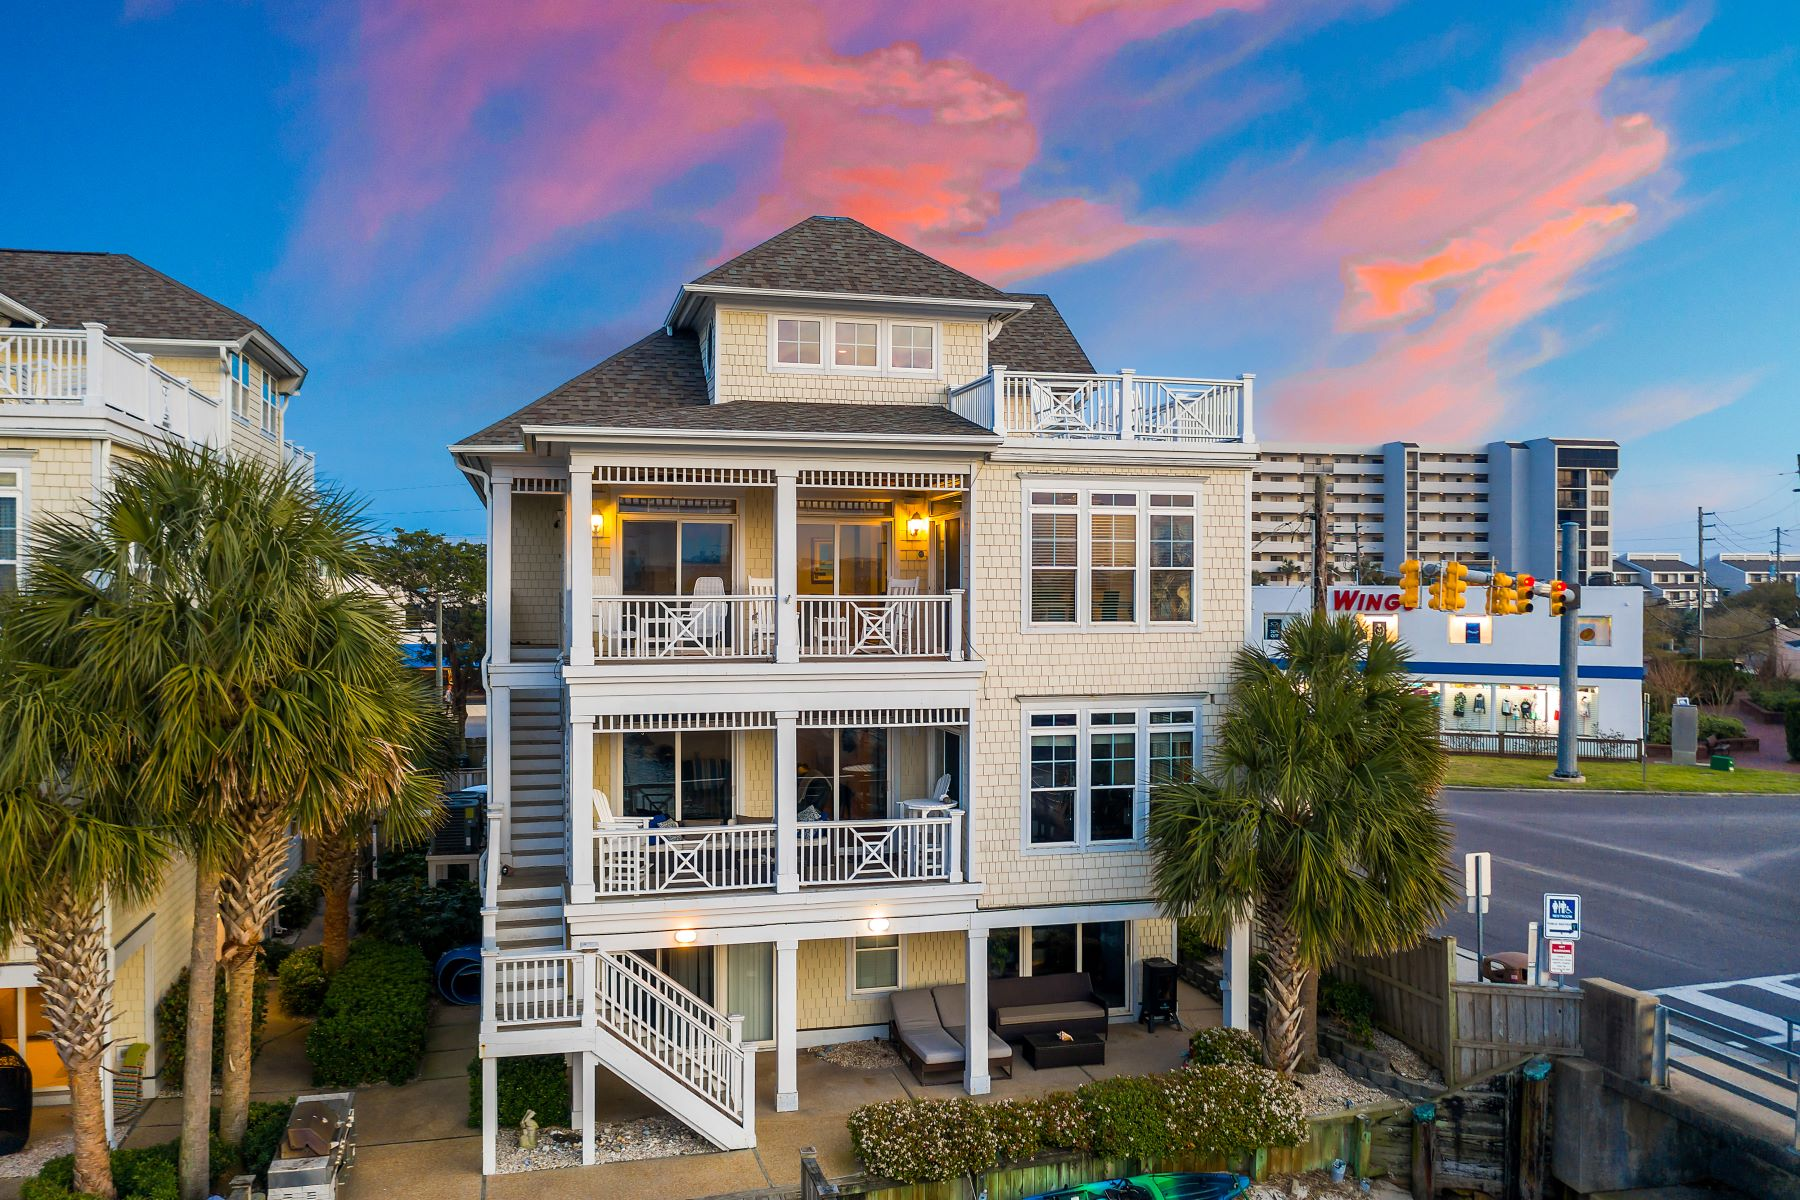 Condominiums for Sale at Condo with Sunrise and Sunset Views 20 Channel Ave A Wrightsville Beach, North Carolina 28480 United States